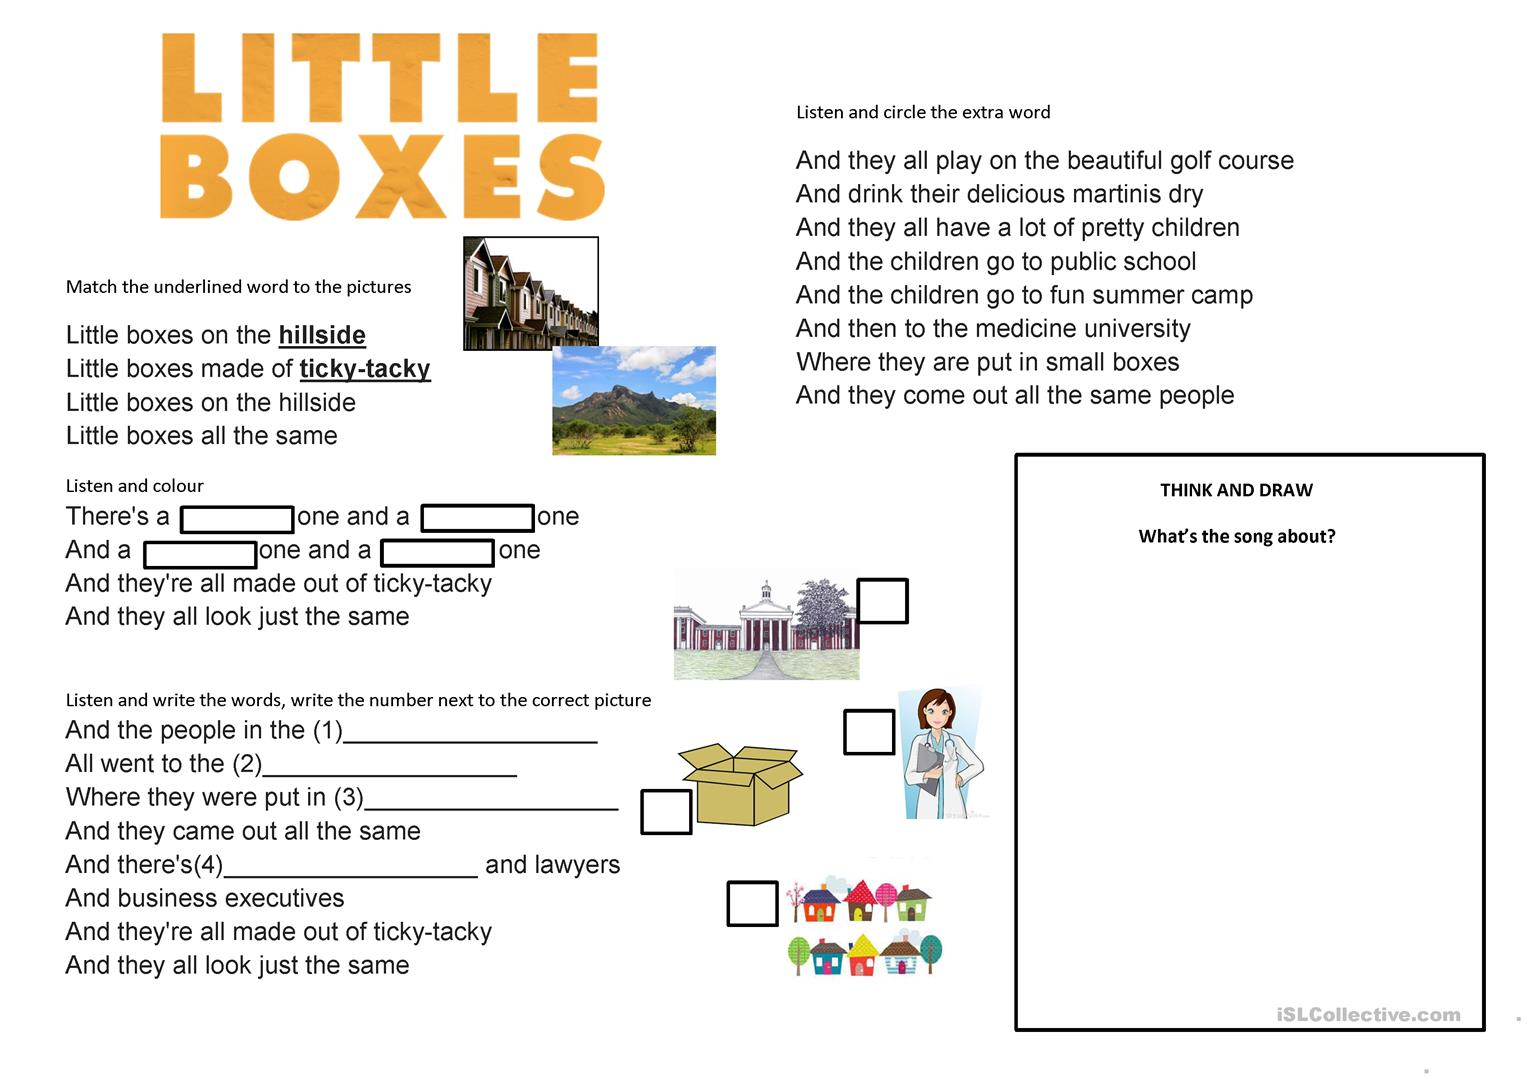 Little Boxes Walk Of The Earth Cover Song Elementary